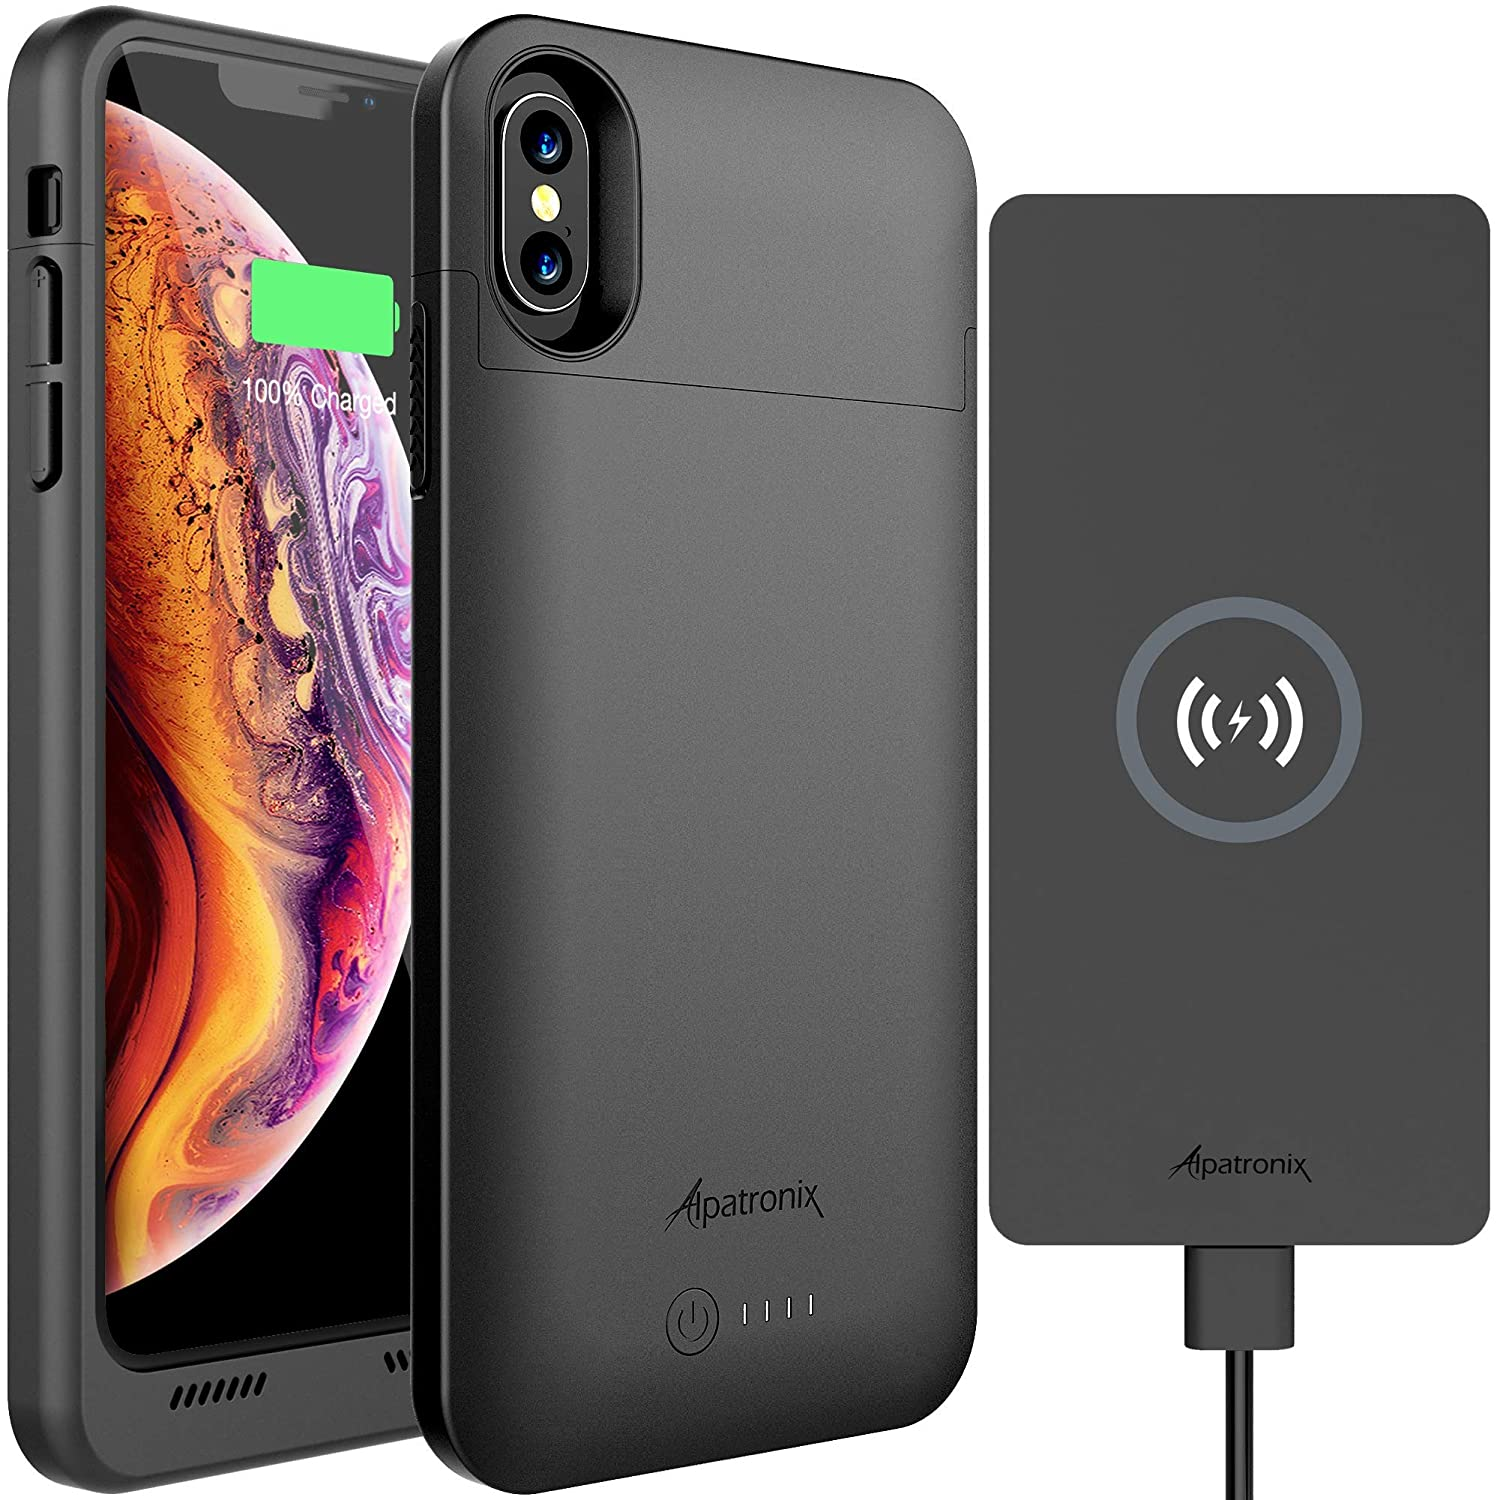 iPhone X/XS Battery Case & Wireless Charger: Alpatronix BXX 4200mAh 5.8-inch Portable Qi Compatible Extended Charging Power Case & 10W Thin Non-Slip Fast Charge Wireless Pad for Qi-Enabled Devices BXX + CX101